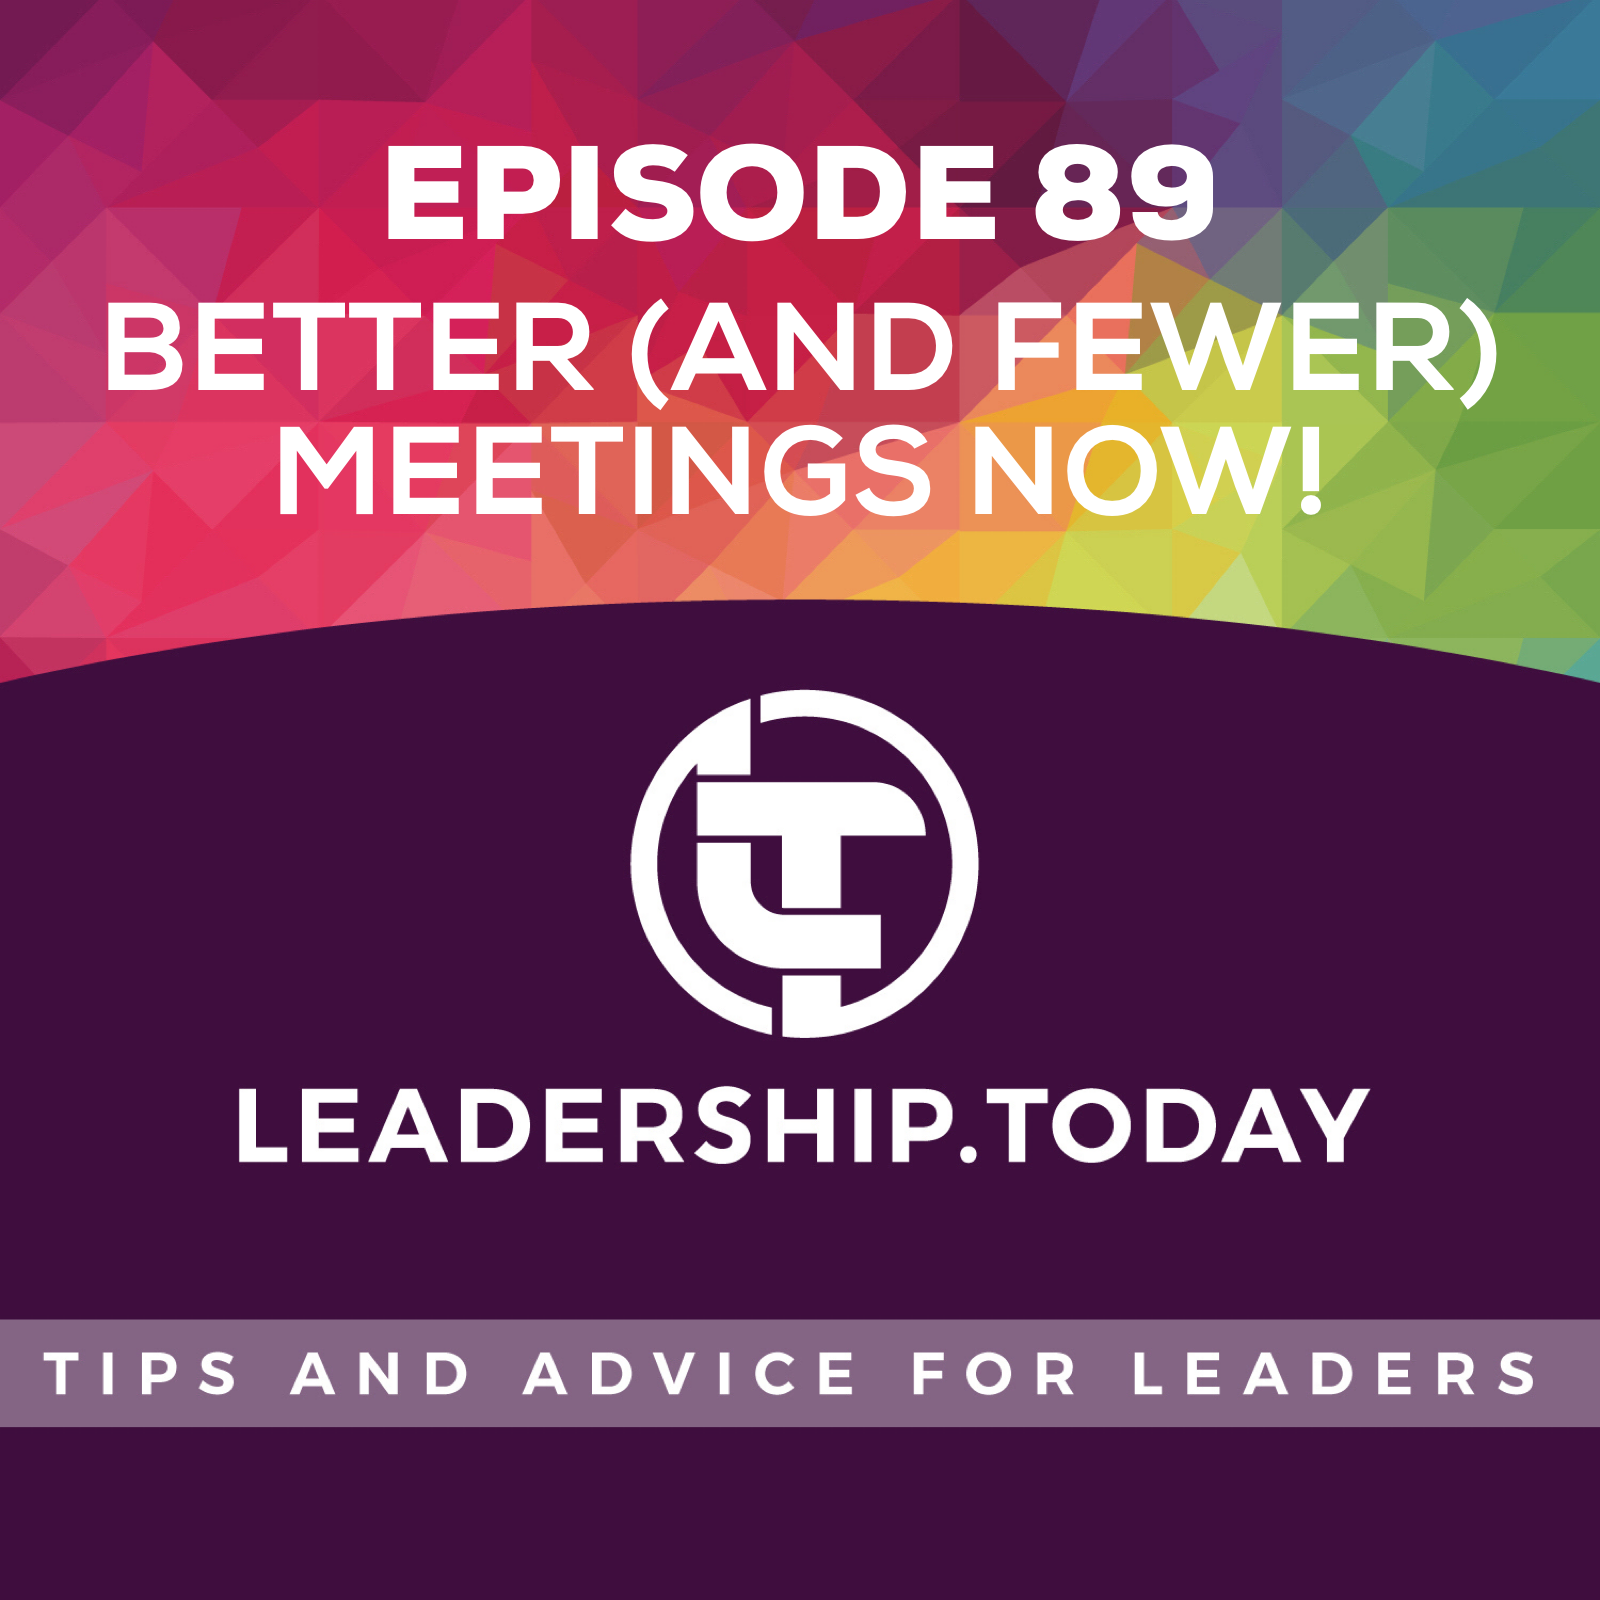 Episode 89 - Better (and Fewer) Meetings Now!